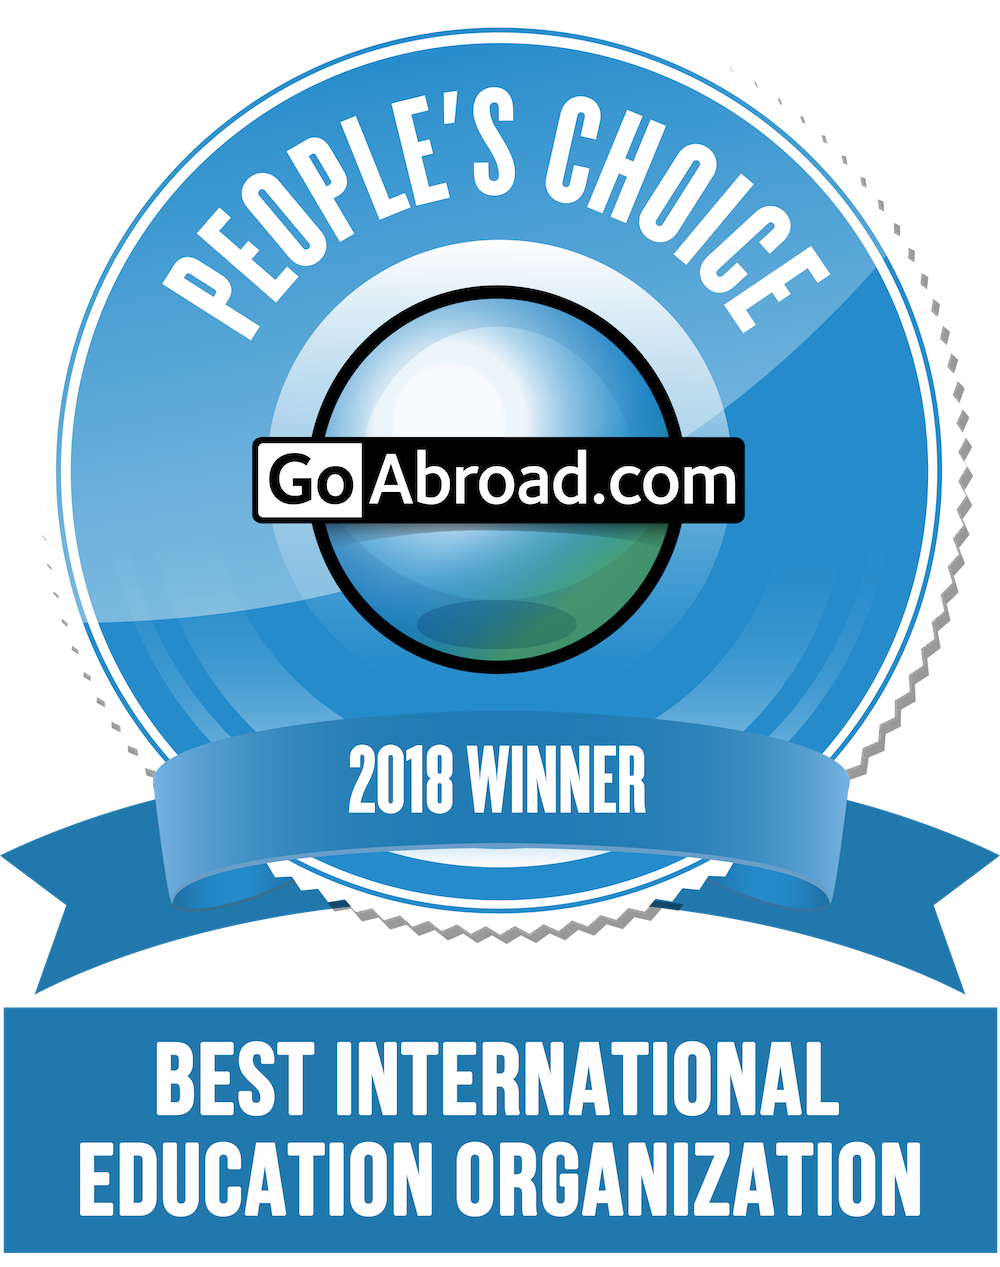 Best International Education Organization For TEFL Certification